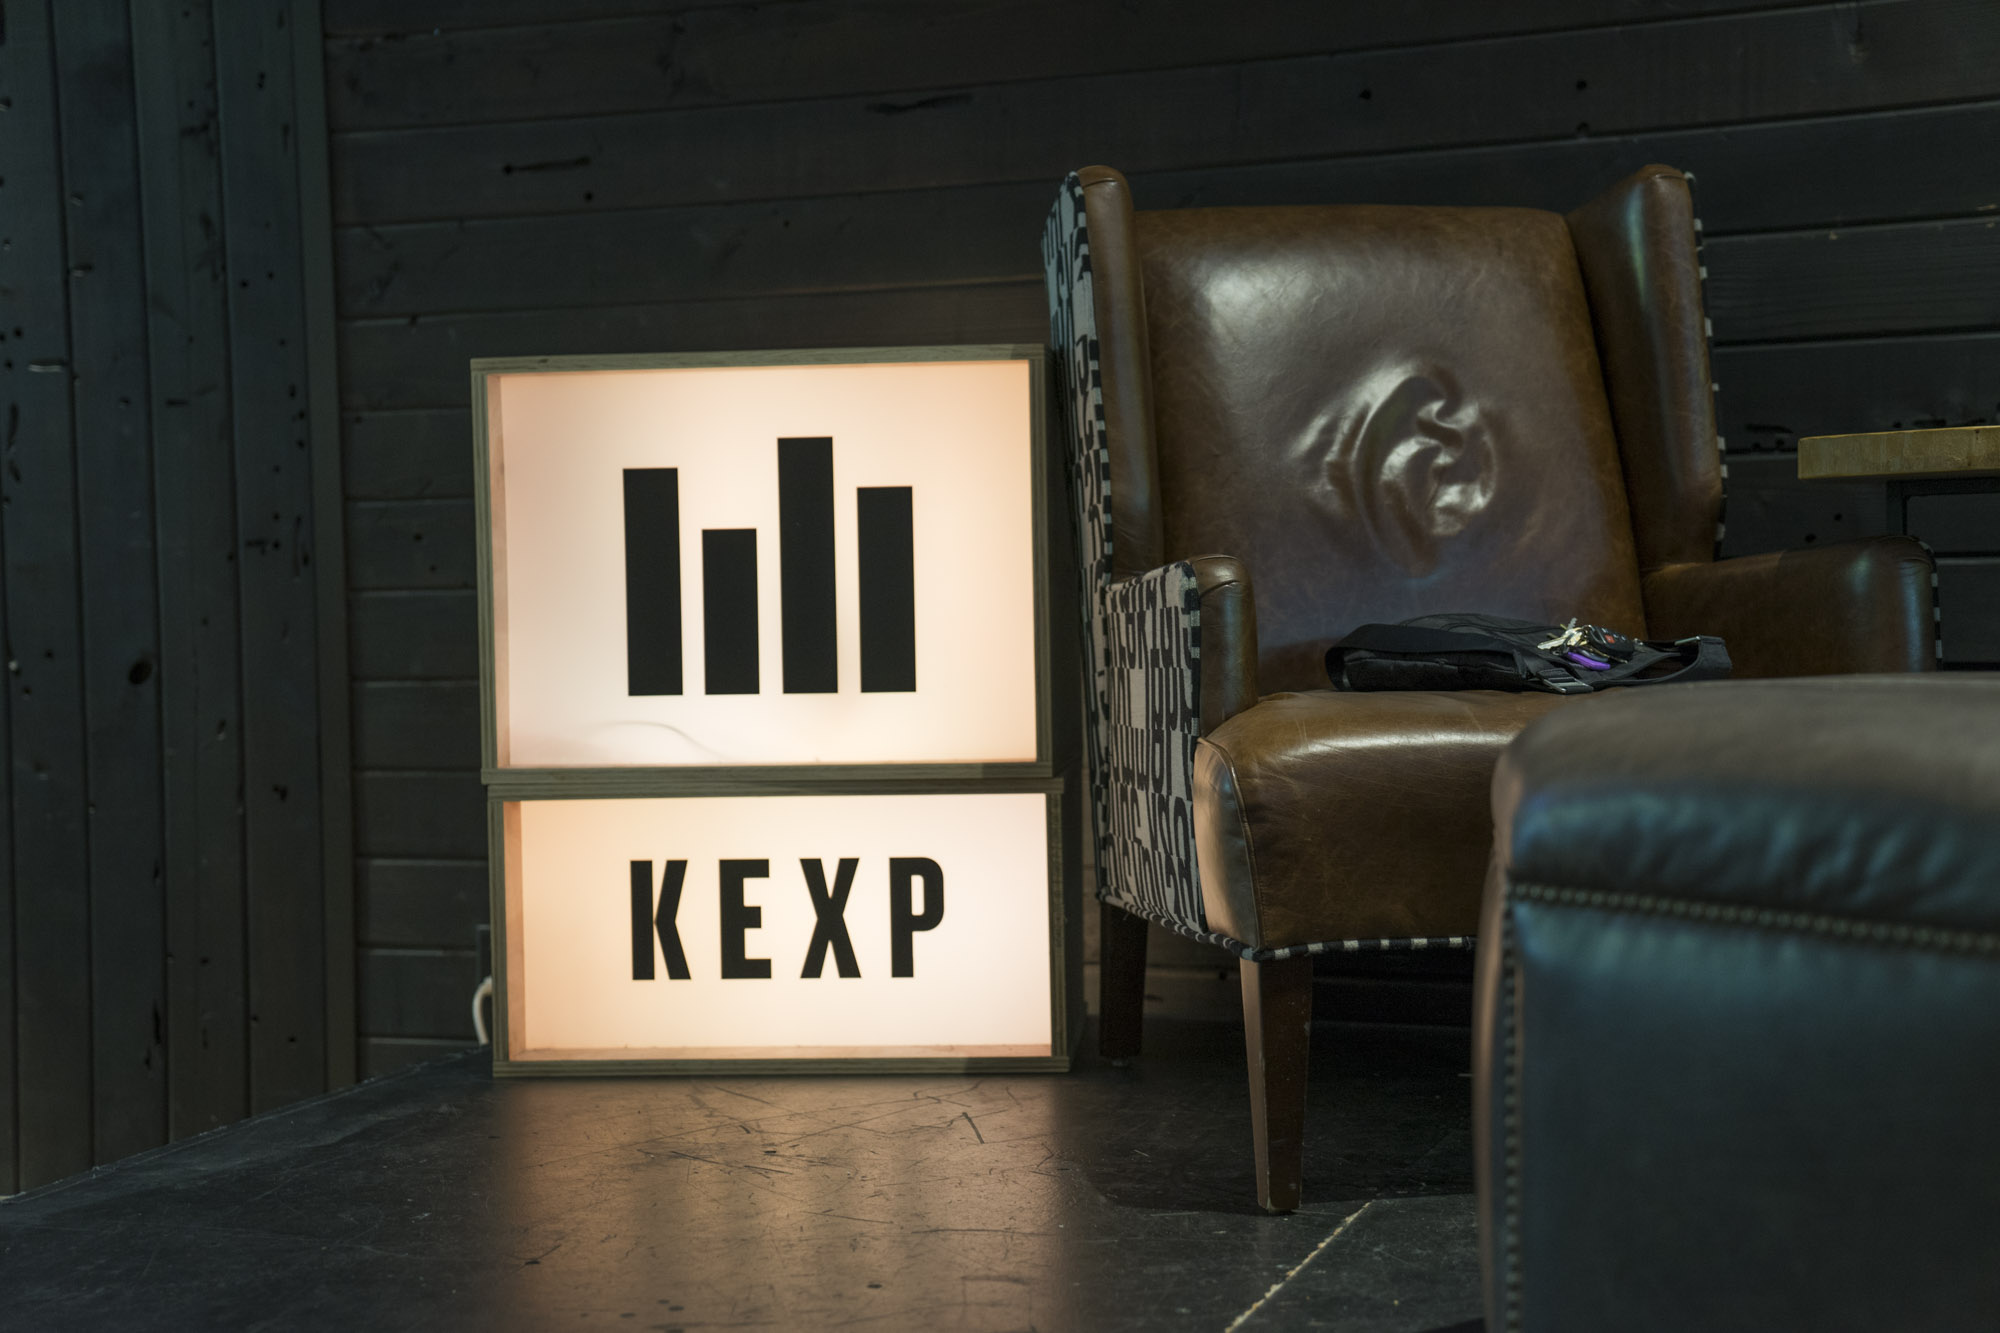 KEXP Sign In Seattle, WA.